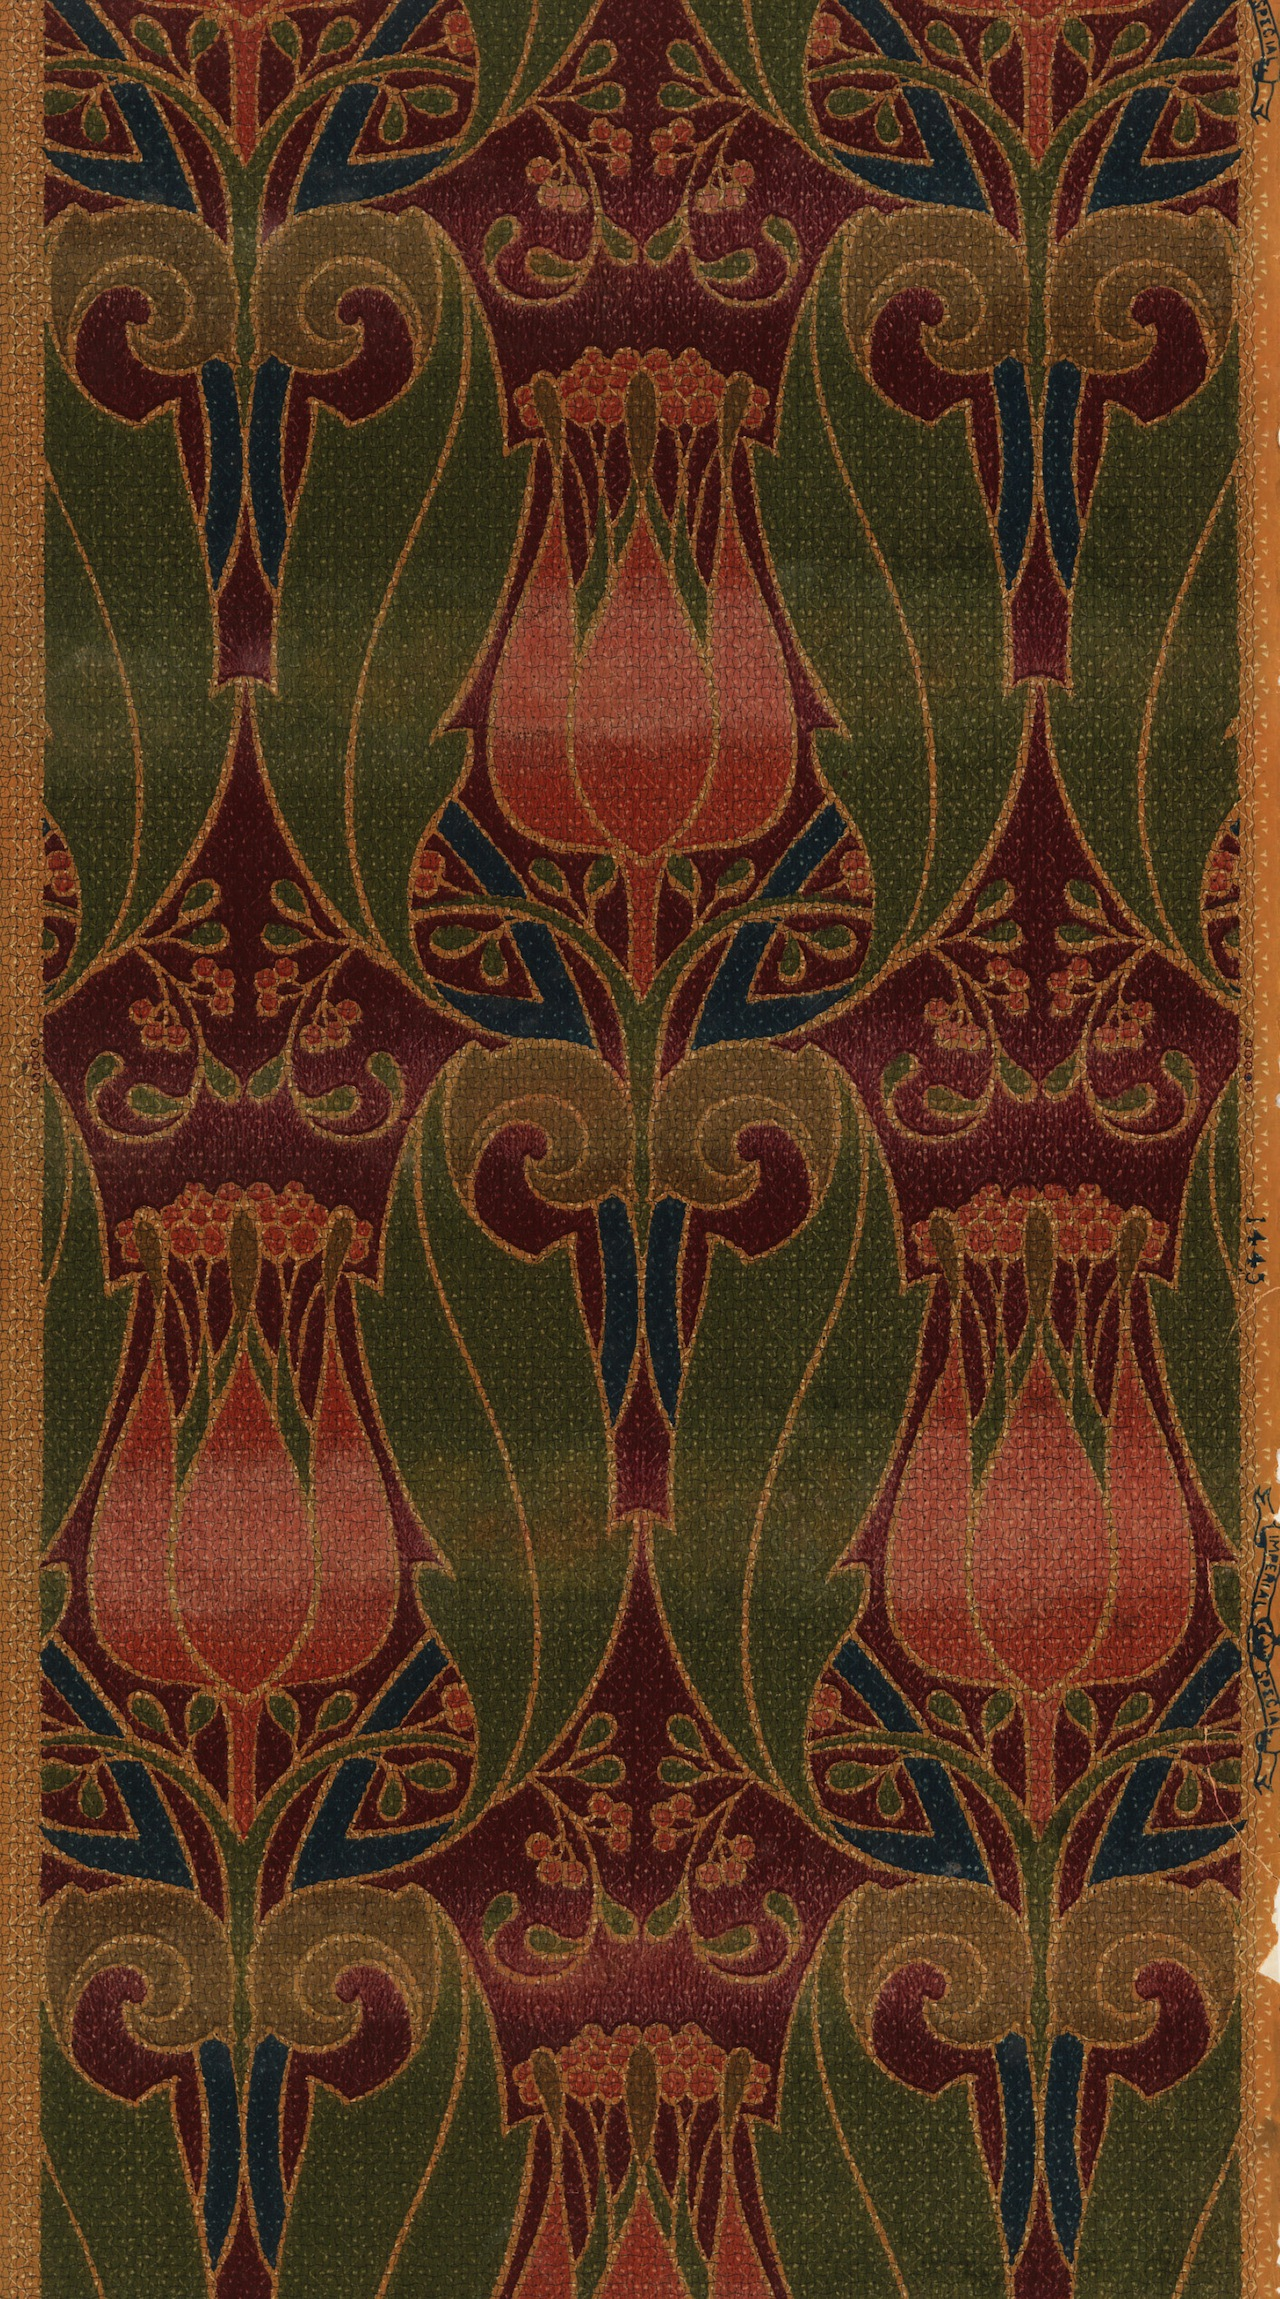 This Art Nouveau Wallpaper Features Tulips And Foliate Scrolls It Was Machine Printed By Imperial